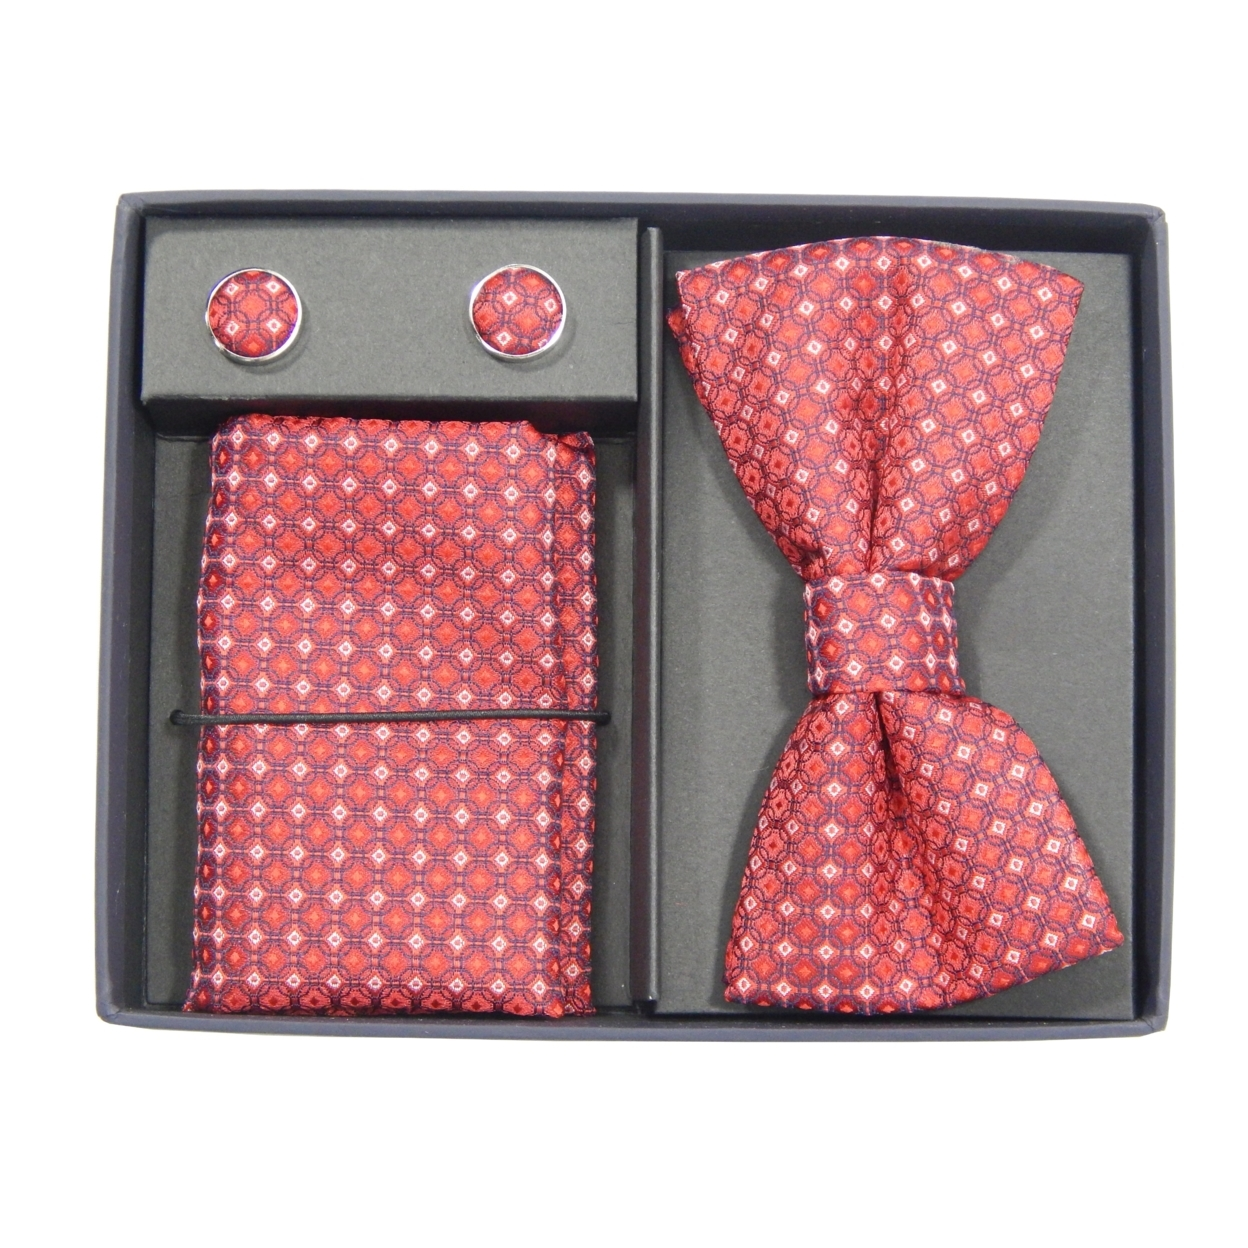 Brio Milano Mens Fashion Bow Tie Handkerchief & Cufflinks Set, Red Checkered Polka Dot